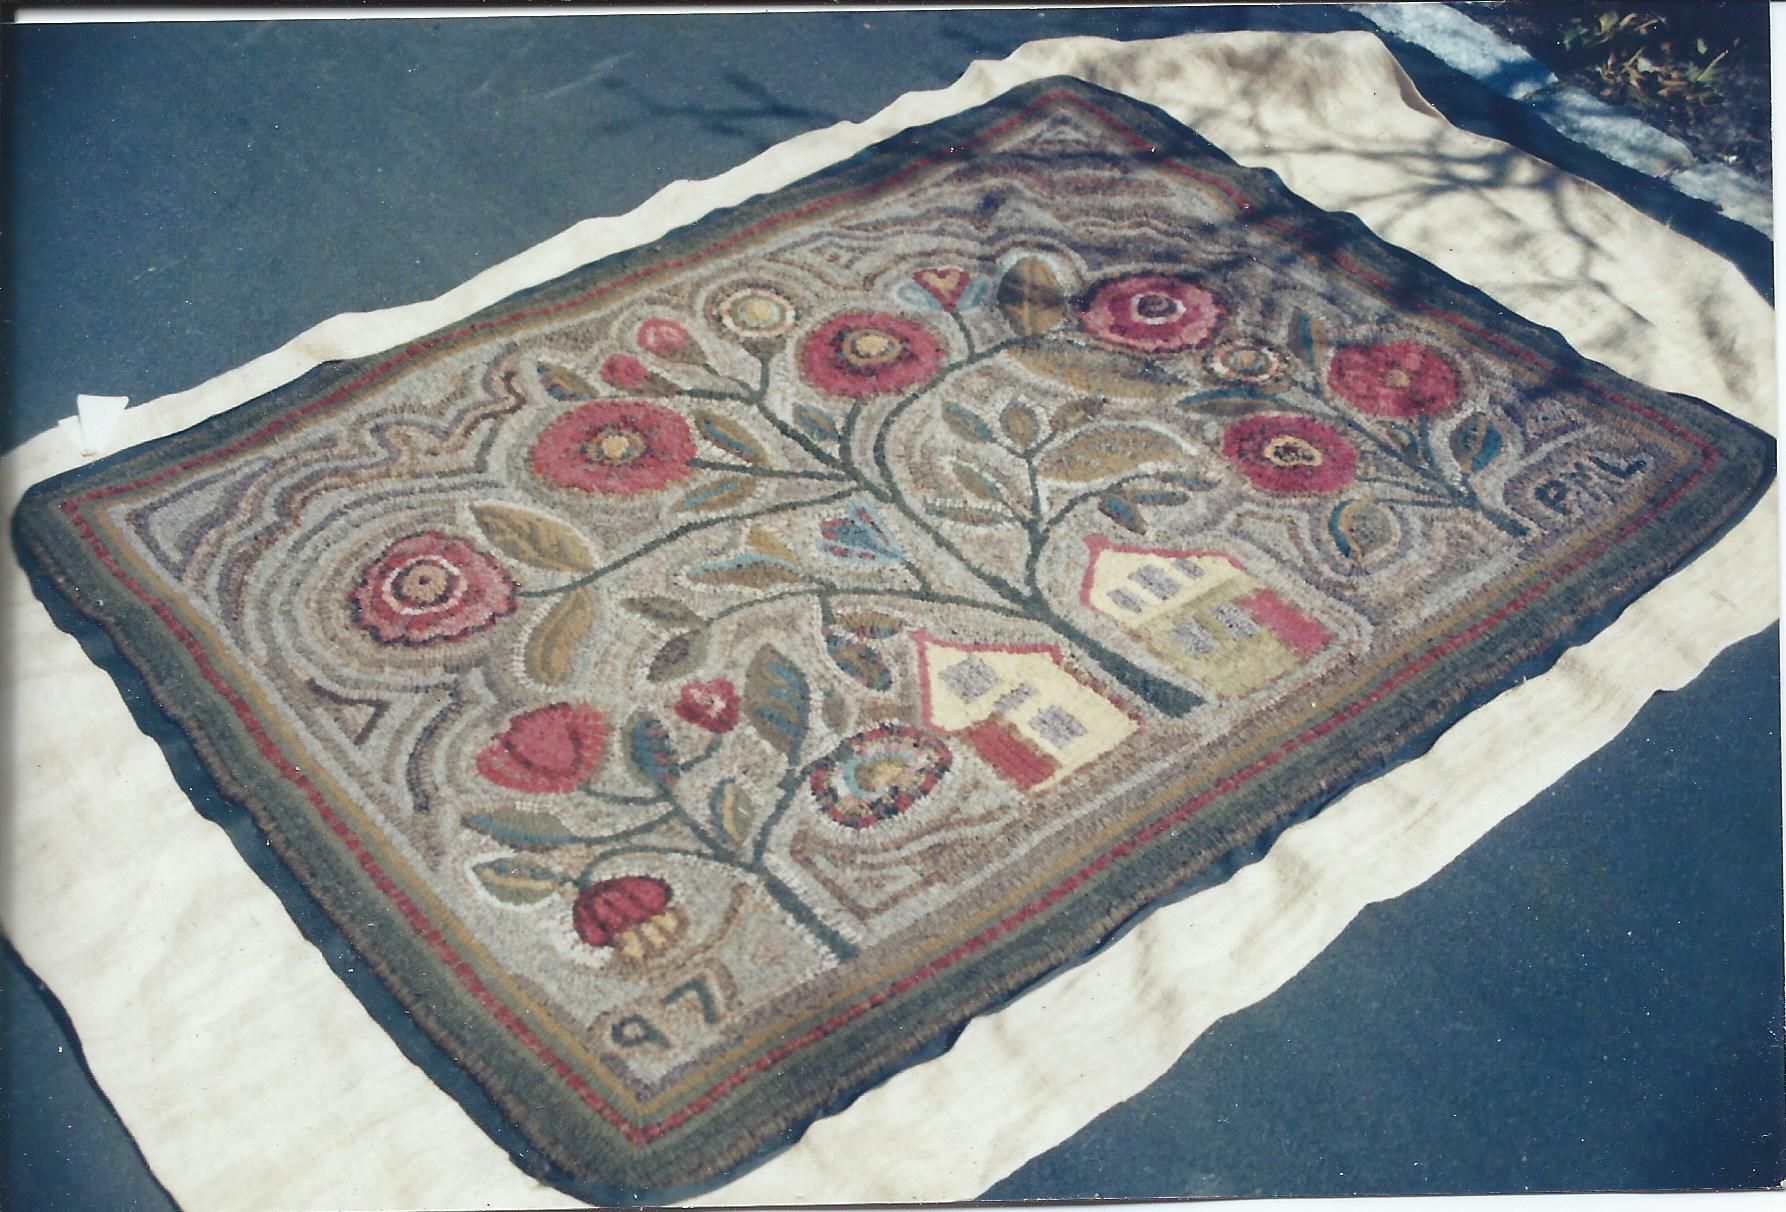 This Is A Rug Design Adapted From An Antique Yarn Sewn Shown On Page 15 Of Joel And Kate Kopp S Book American Hooked Rugs